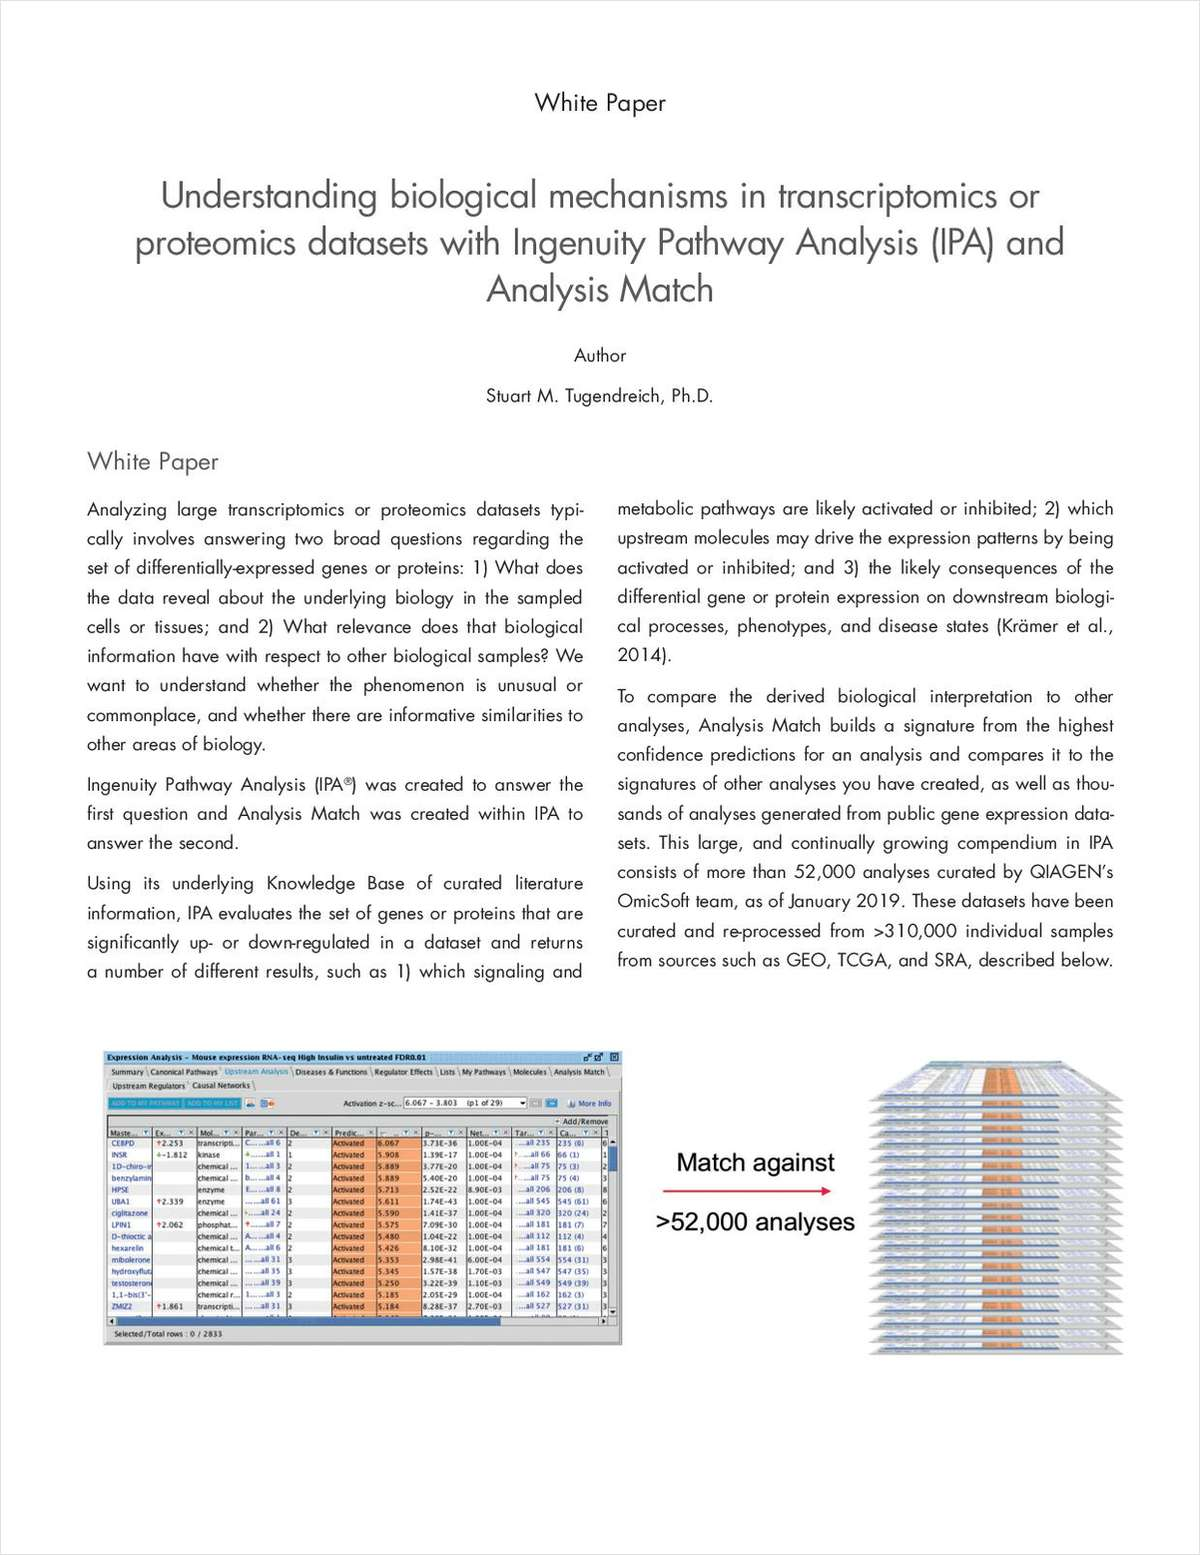 Understanding Biological Mechanisms in Transcriptomics or Proteomics Datasets with Ingenuity Pathway Analysis (IPA) and Analysis Match